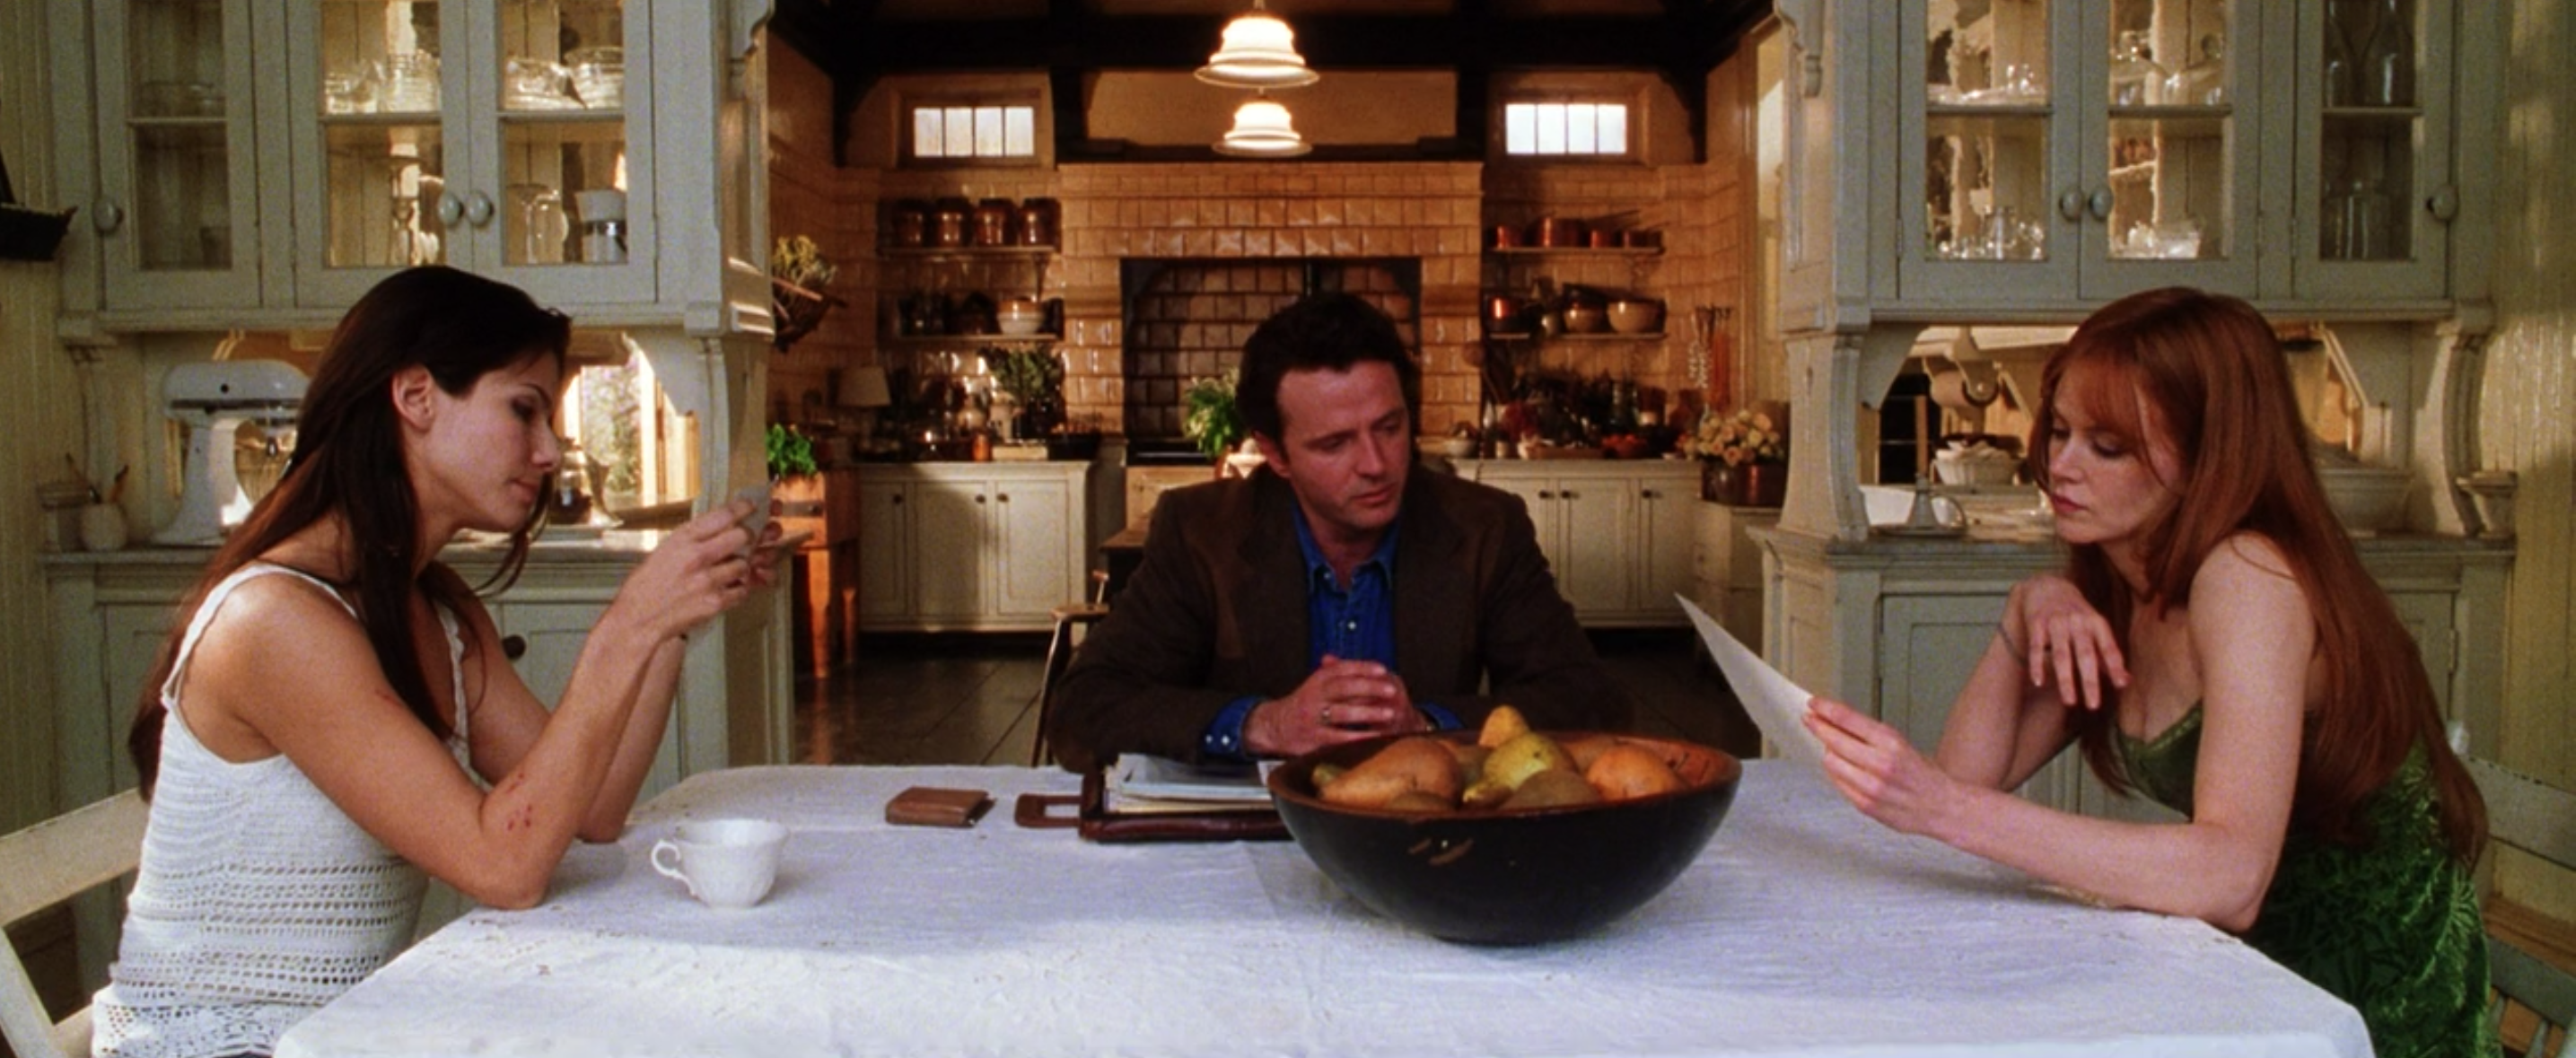 The True Story Of The Home In Practical Magic Hunker